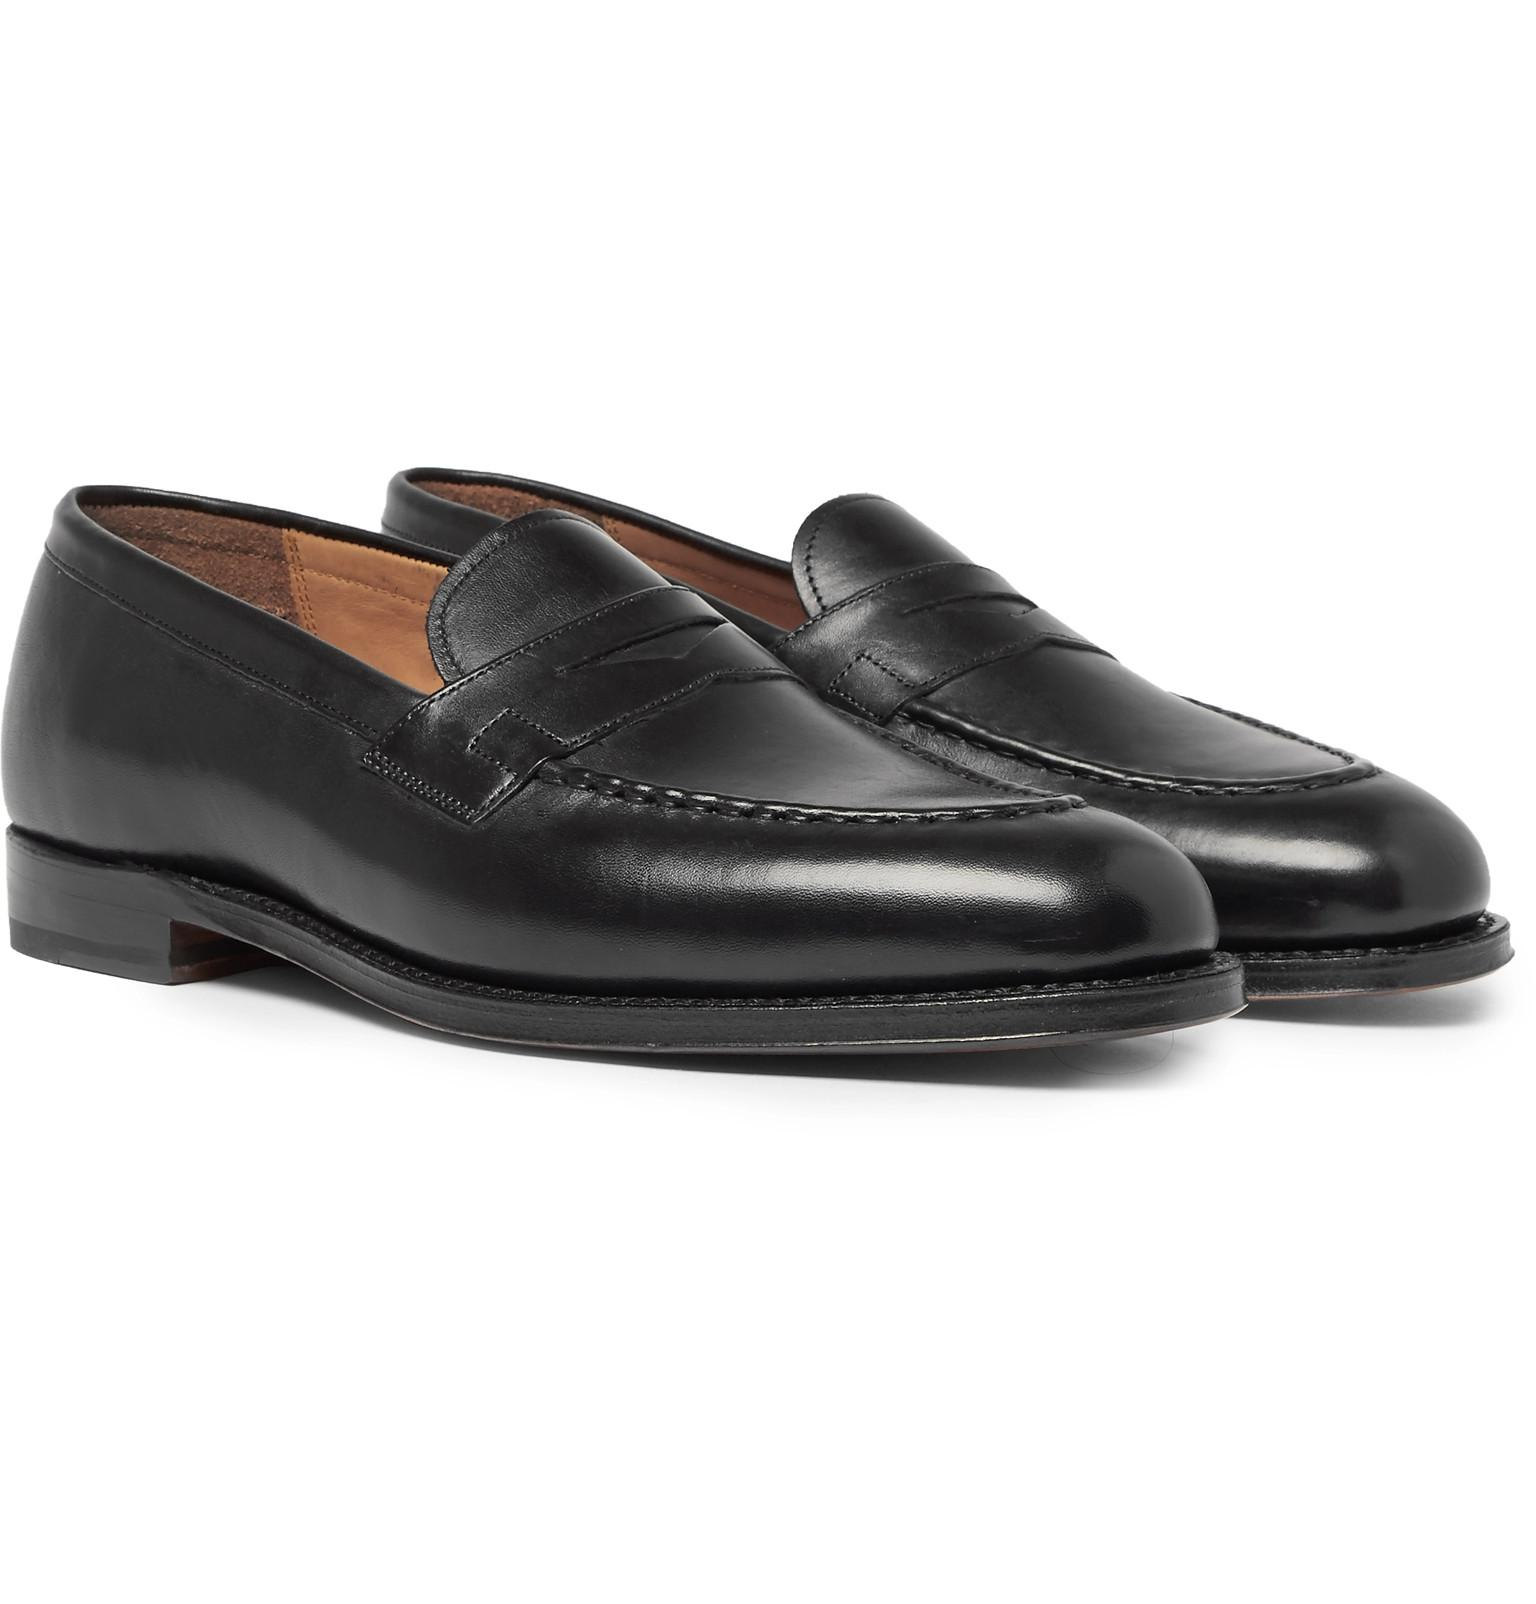 3f4f82807ed Lyst - Grenson Lloyd Leather Penny Loafers in Black for Men